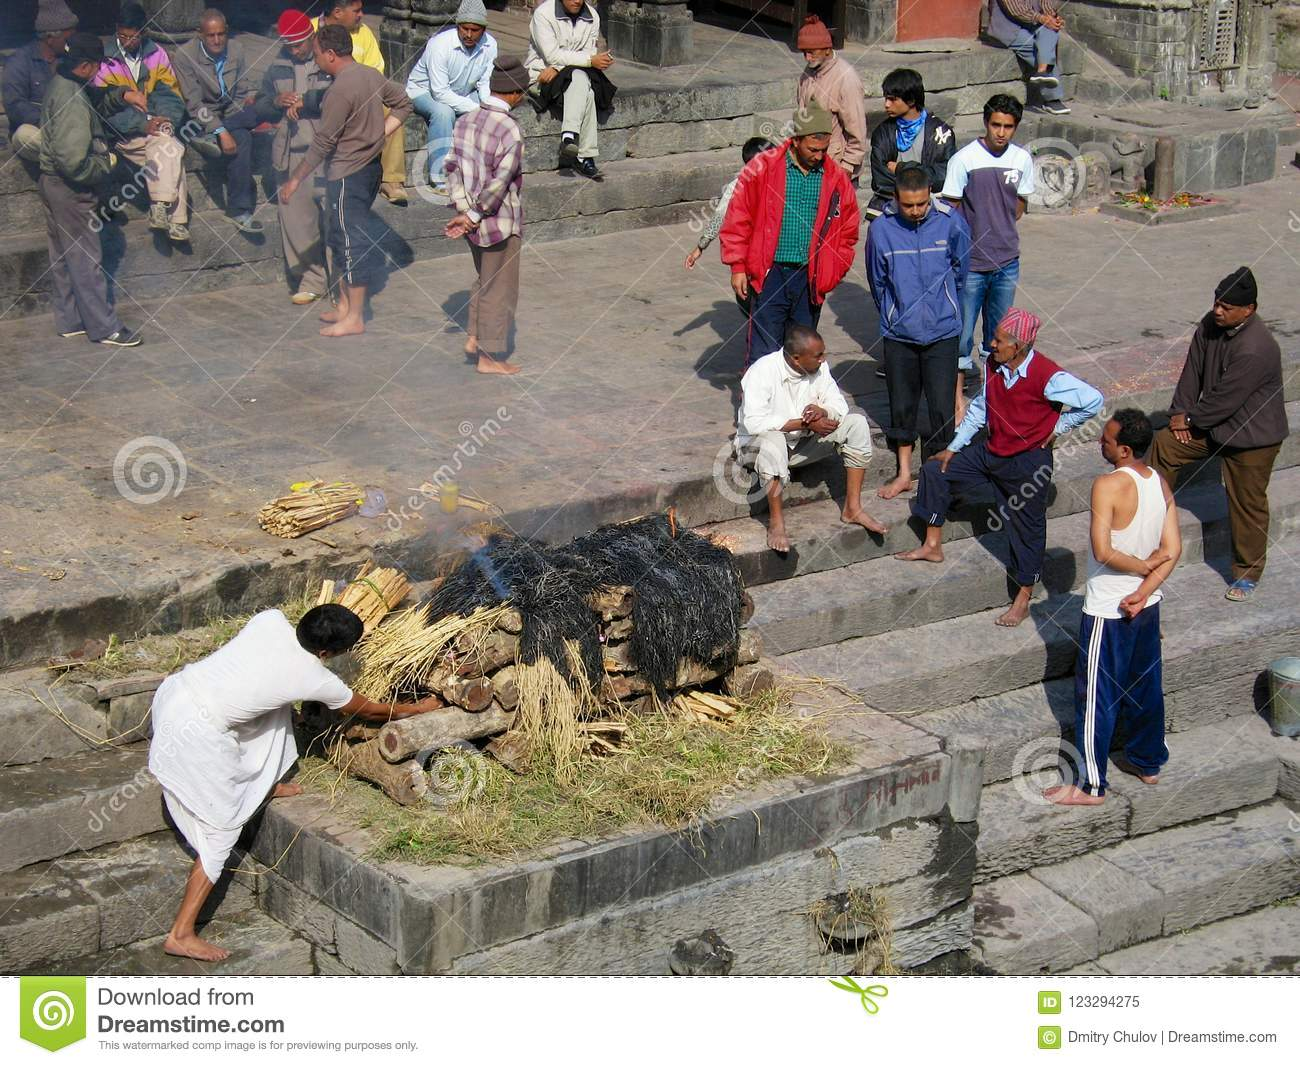 People take part in traditional cremation ceremony at the Pashupatinath temple on the Bagmati River bank in Kathmandu, Nepal.